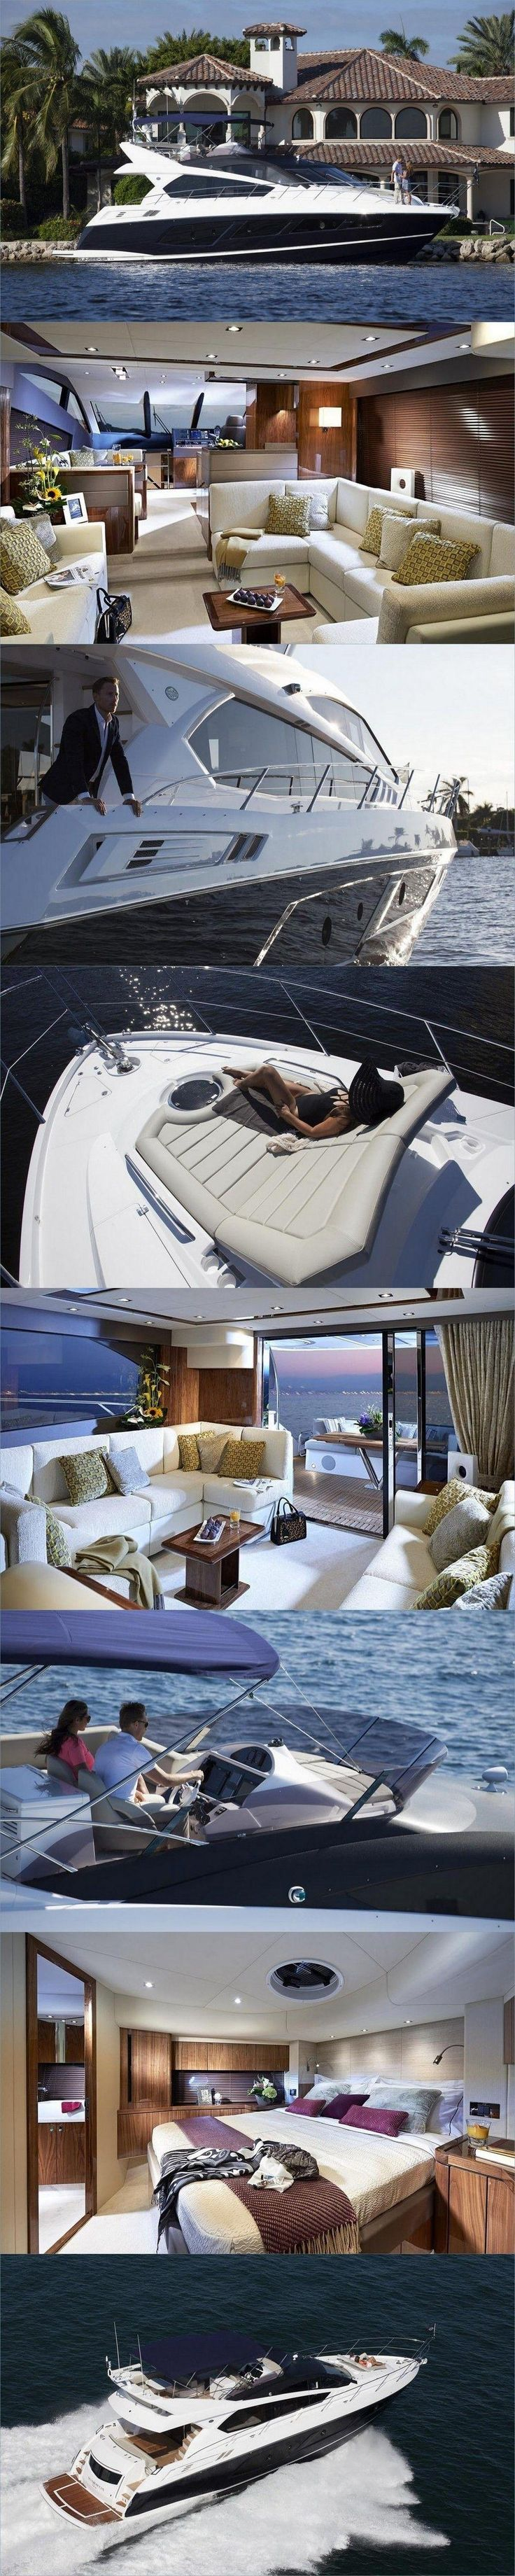 15 luxury sailing yachts photos to keep you inspired 15-luxury-sailing-yachts-photos-to-keep-you-inspired-2